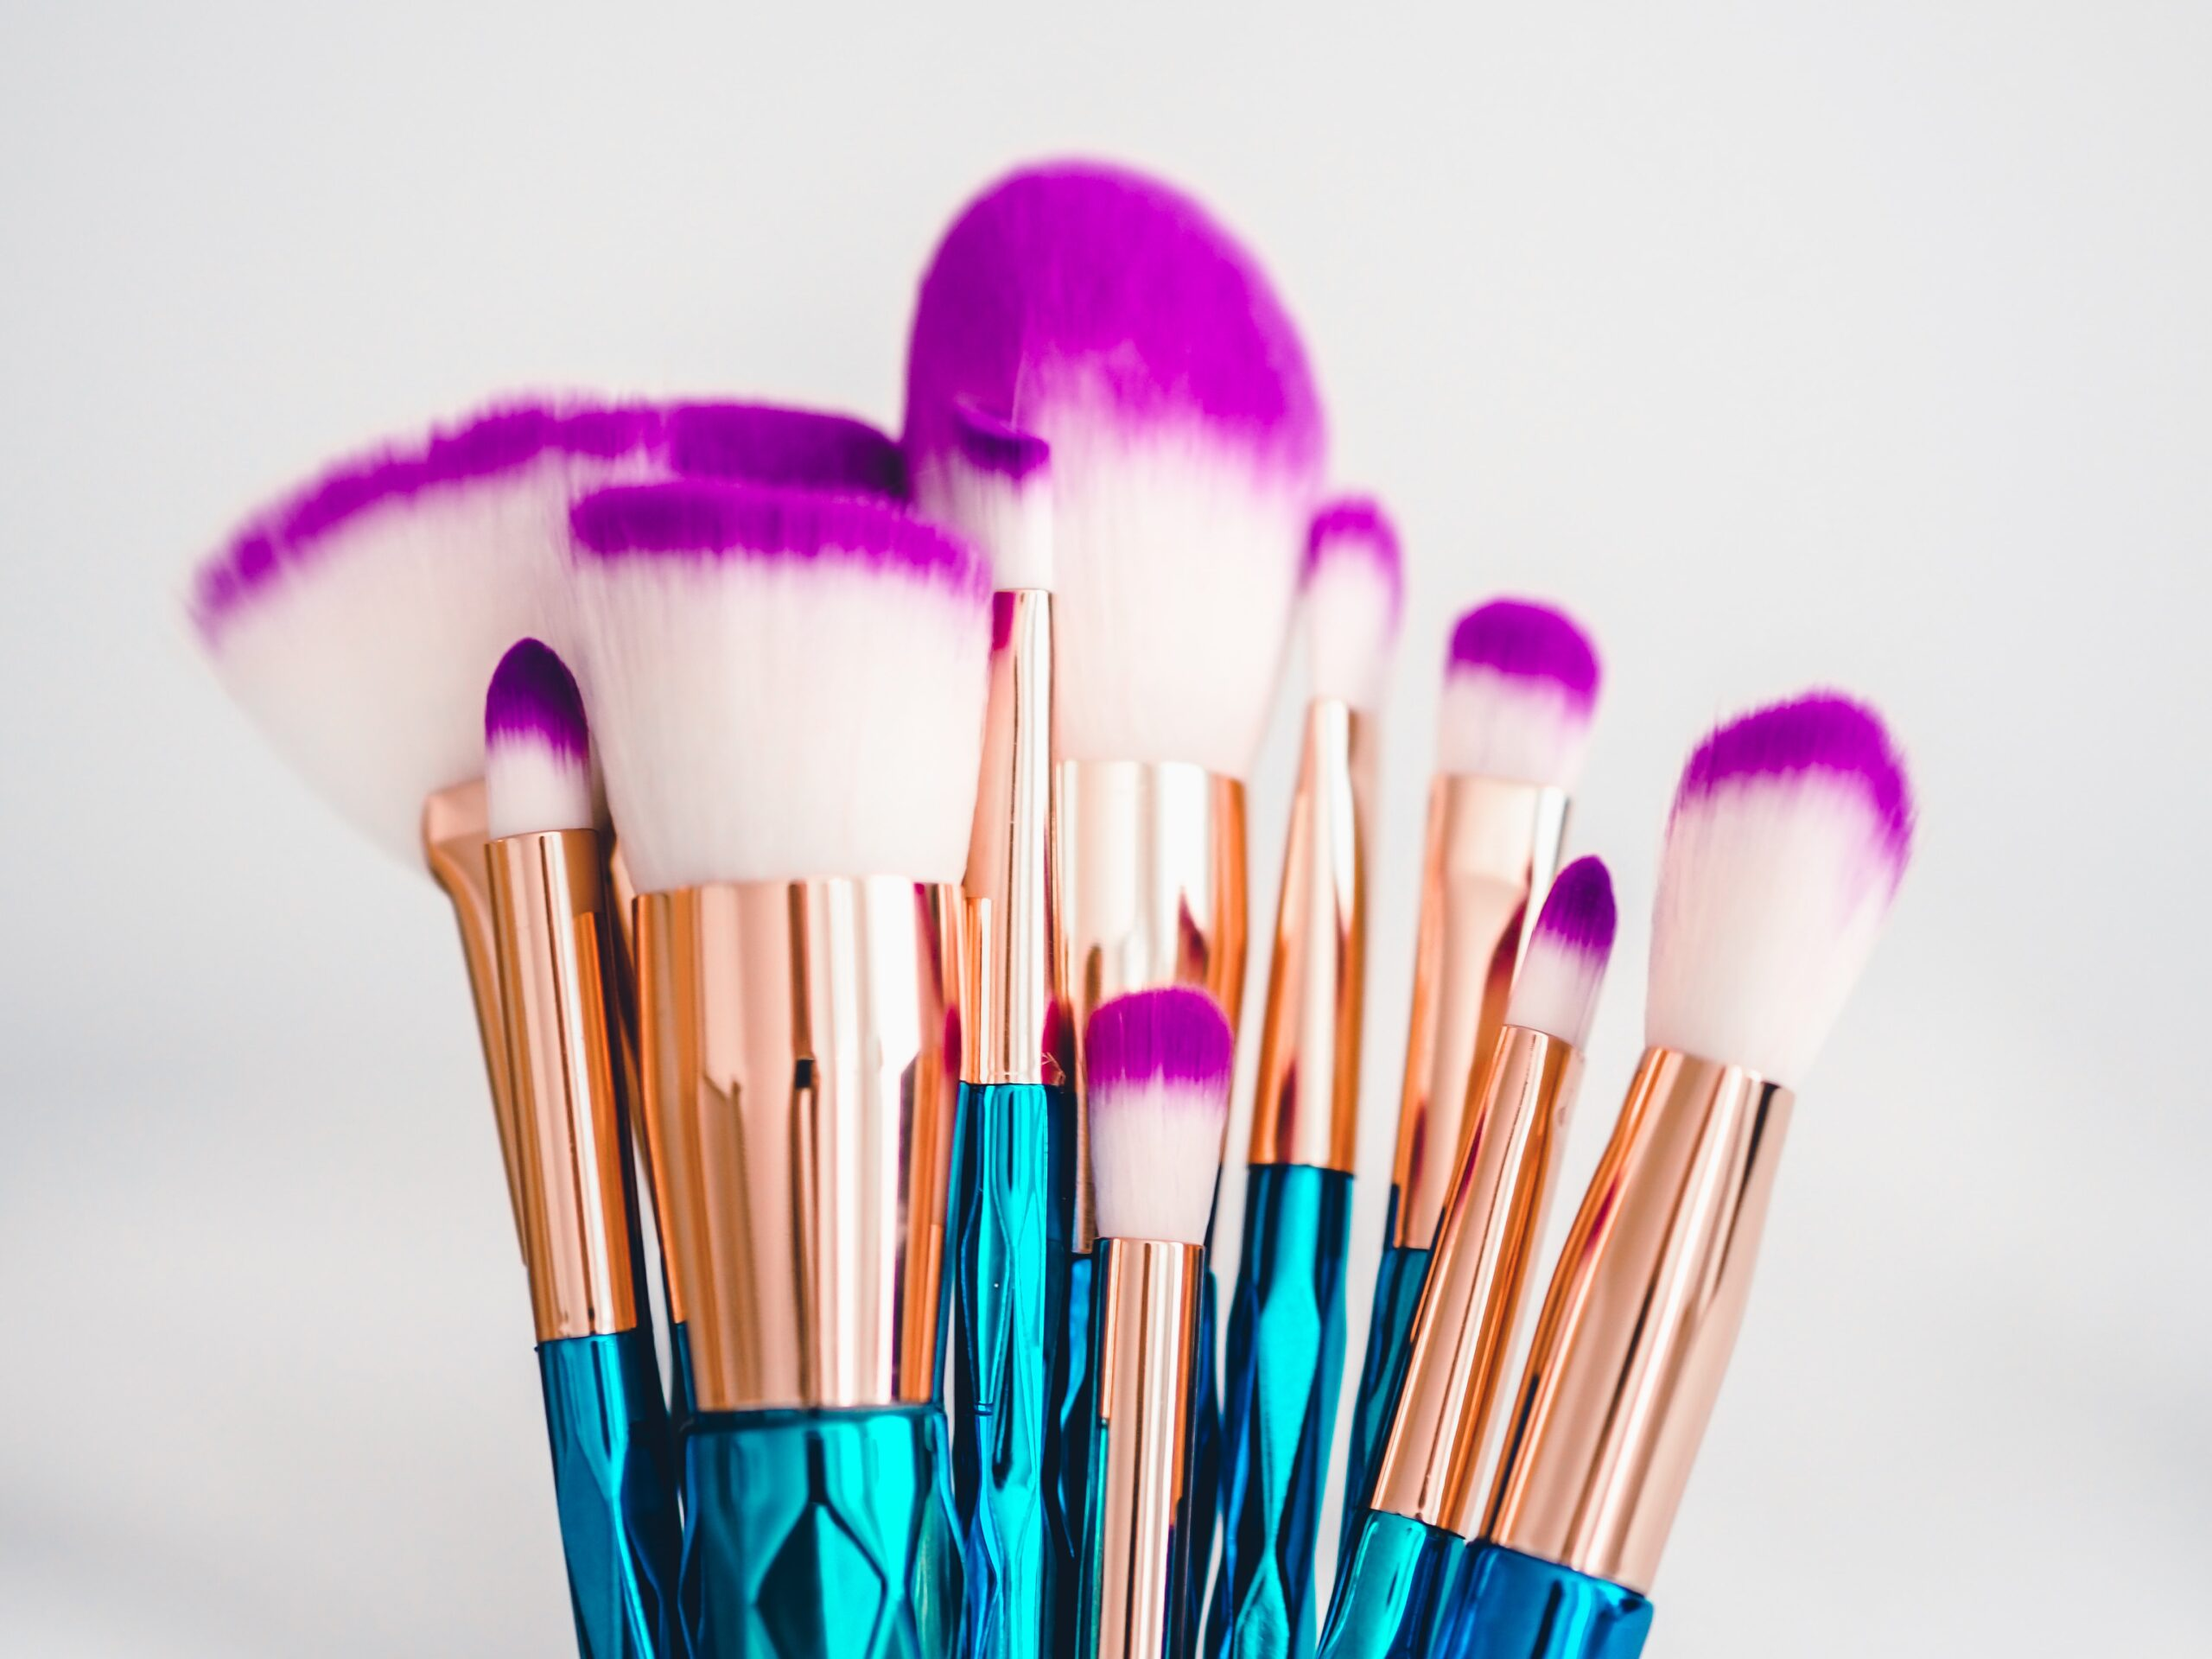 What is the best brand of makeup brushes?